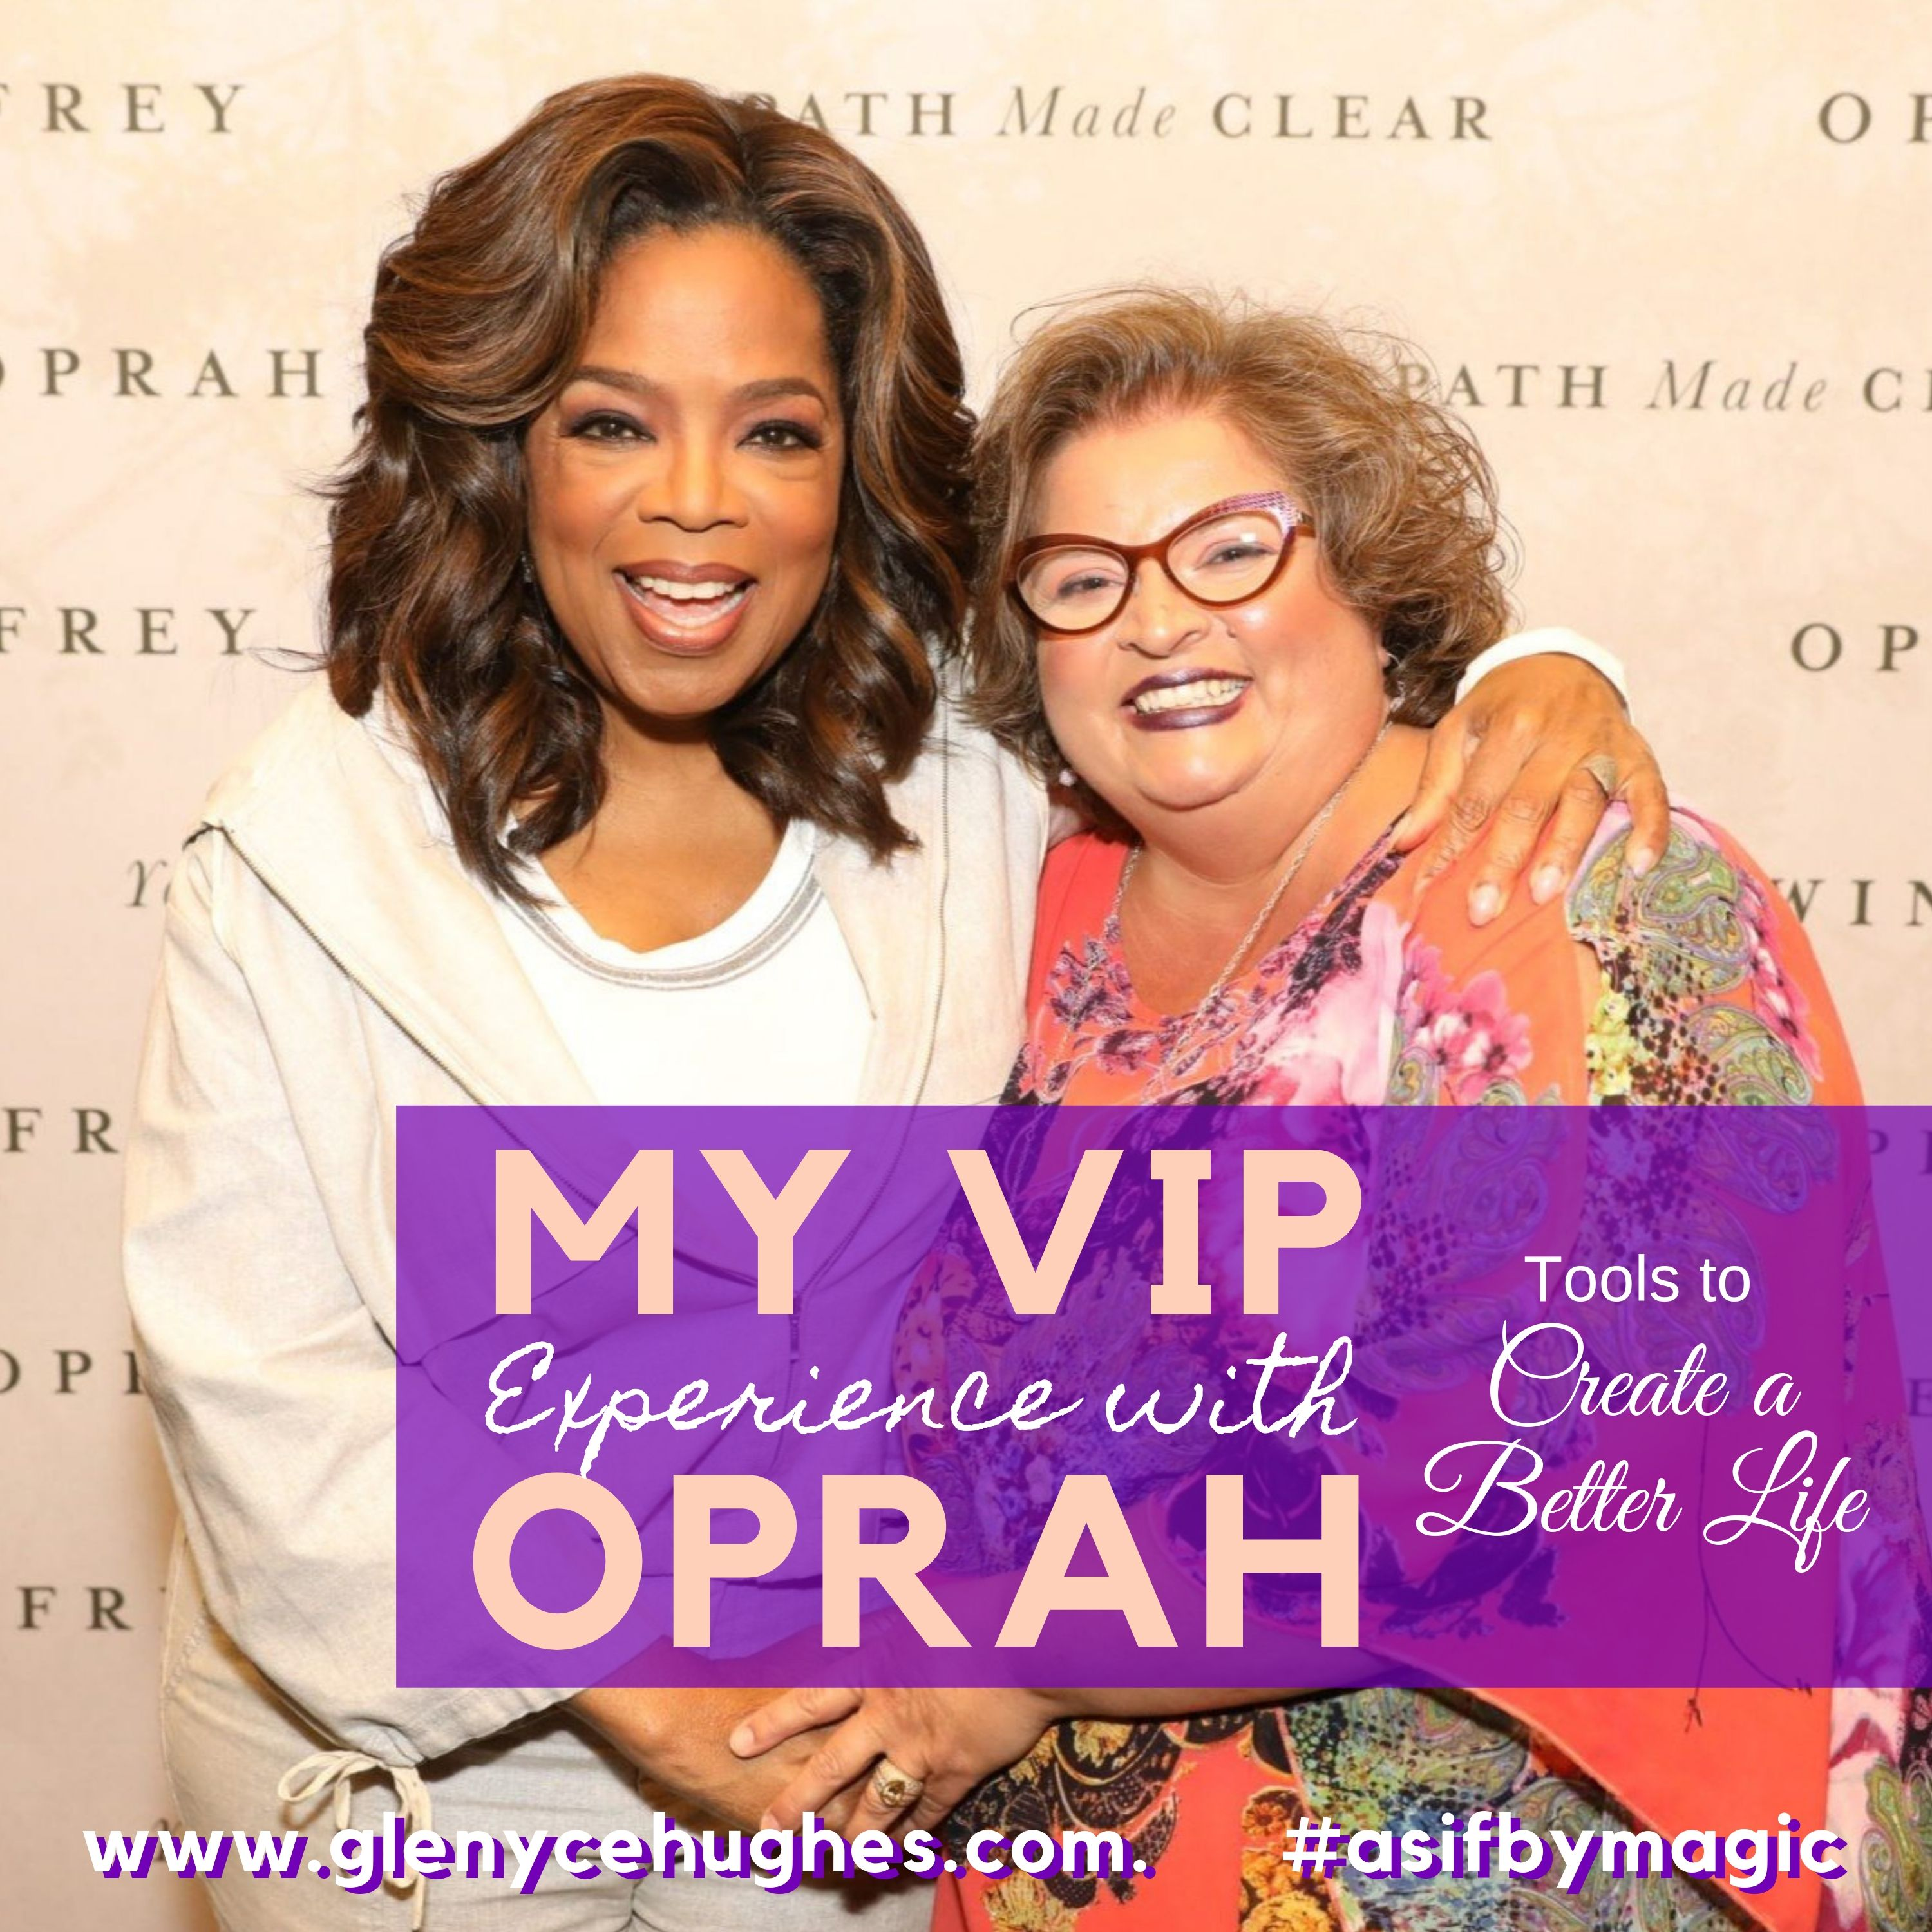 My VIP Experience with Oprah